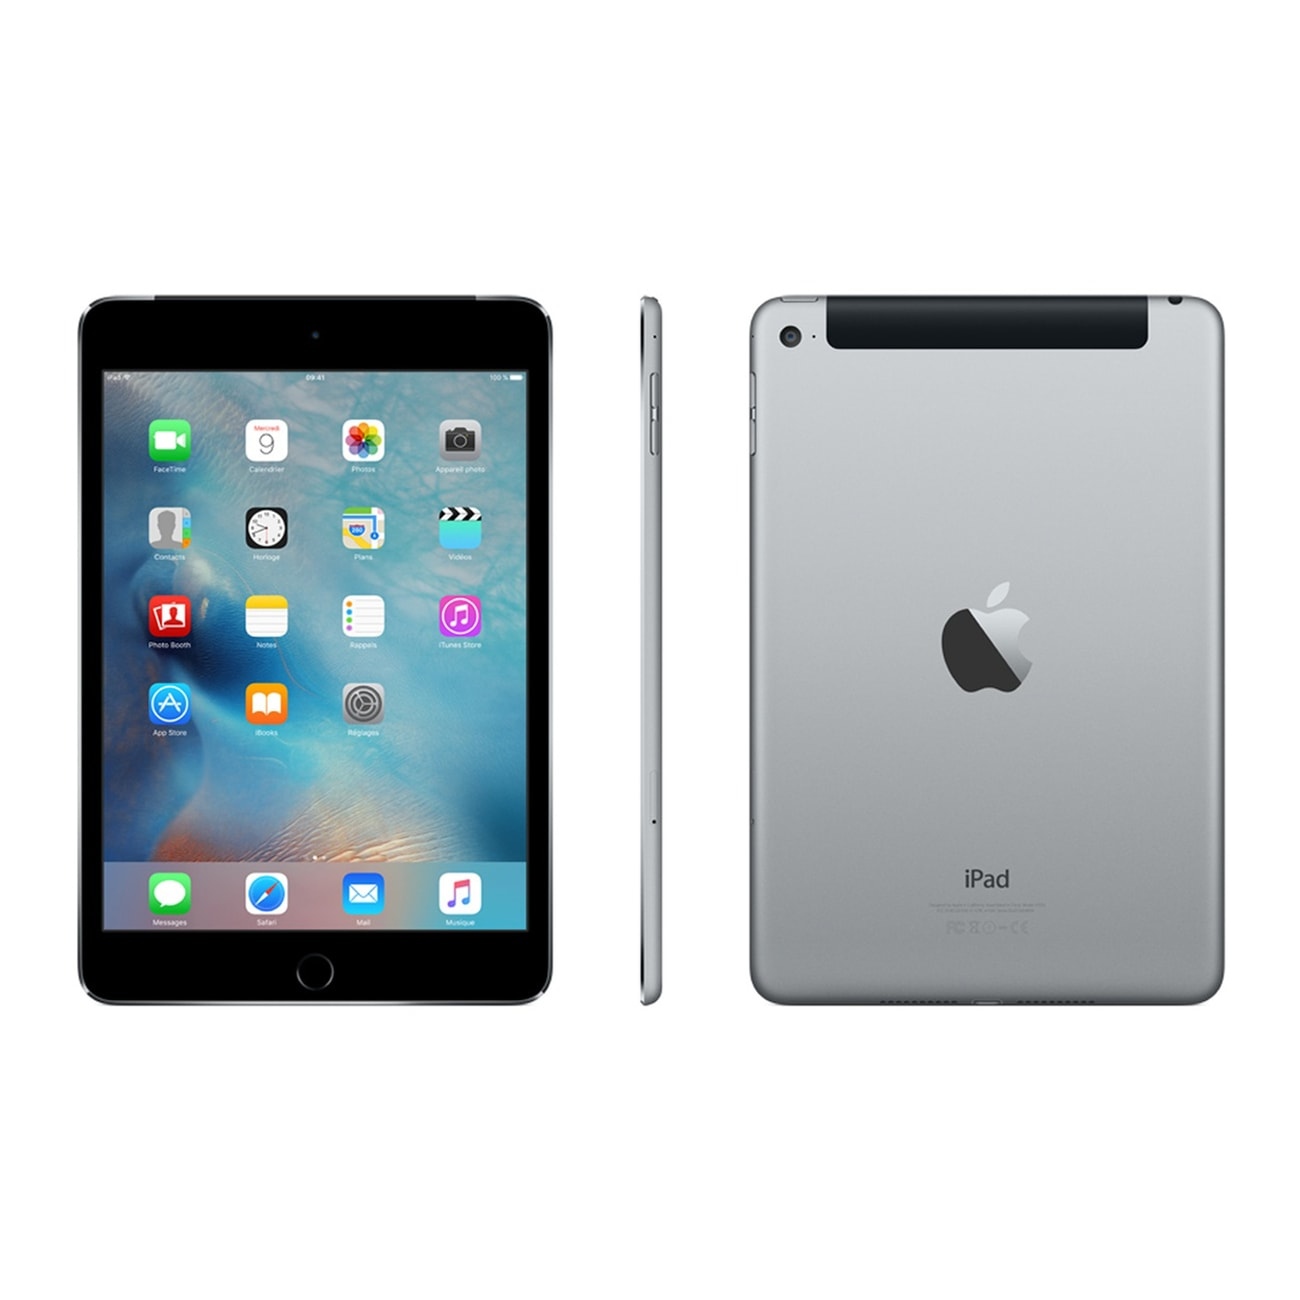 Apple iPad Mini 4 16GB Space Grey Wifi